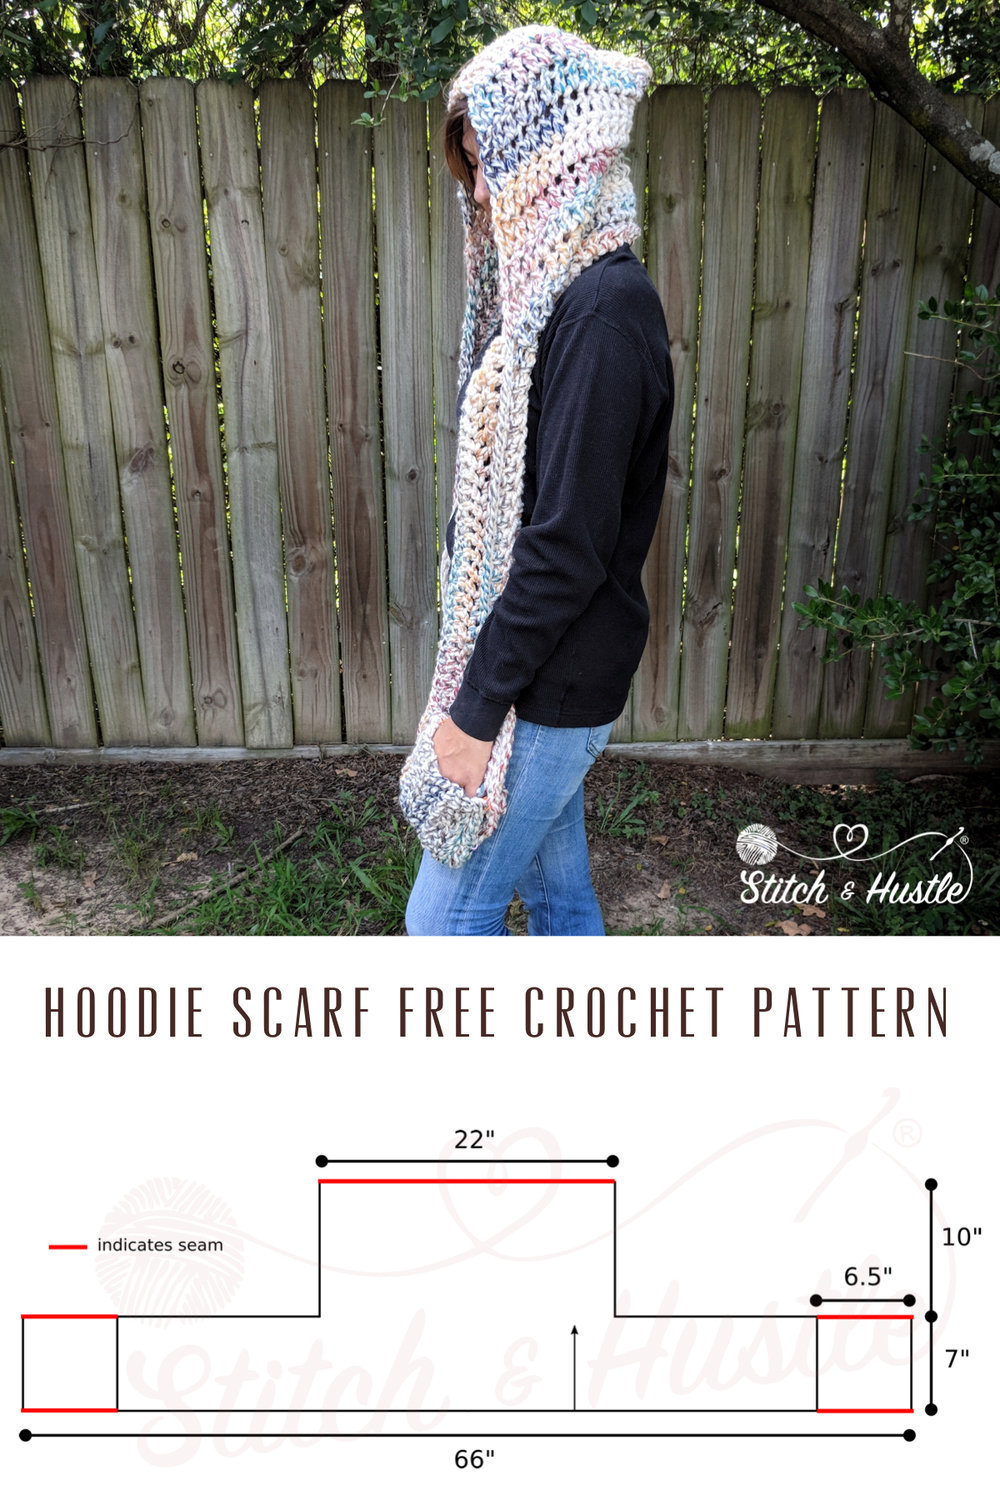 hooded_scarf_free_crochet_pattern_12.jpg